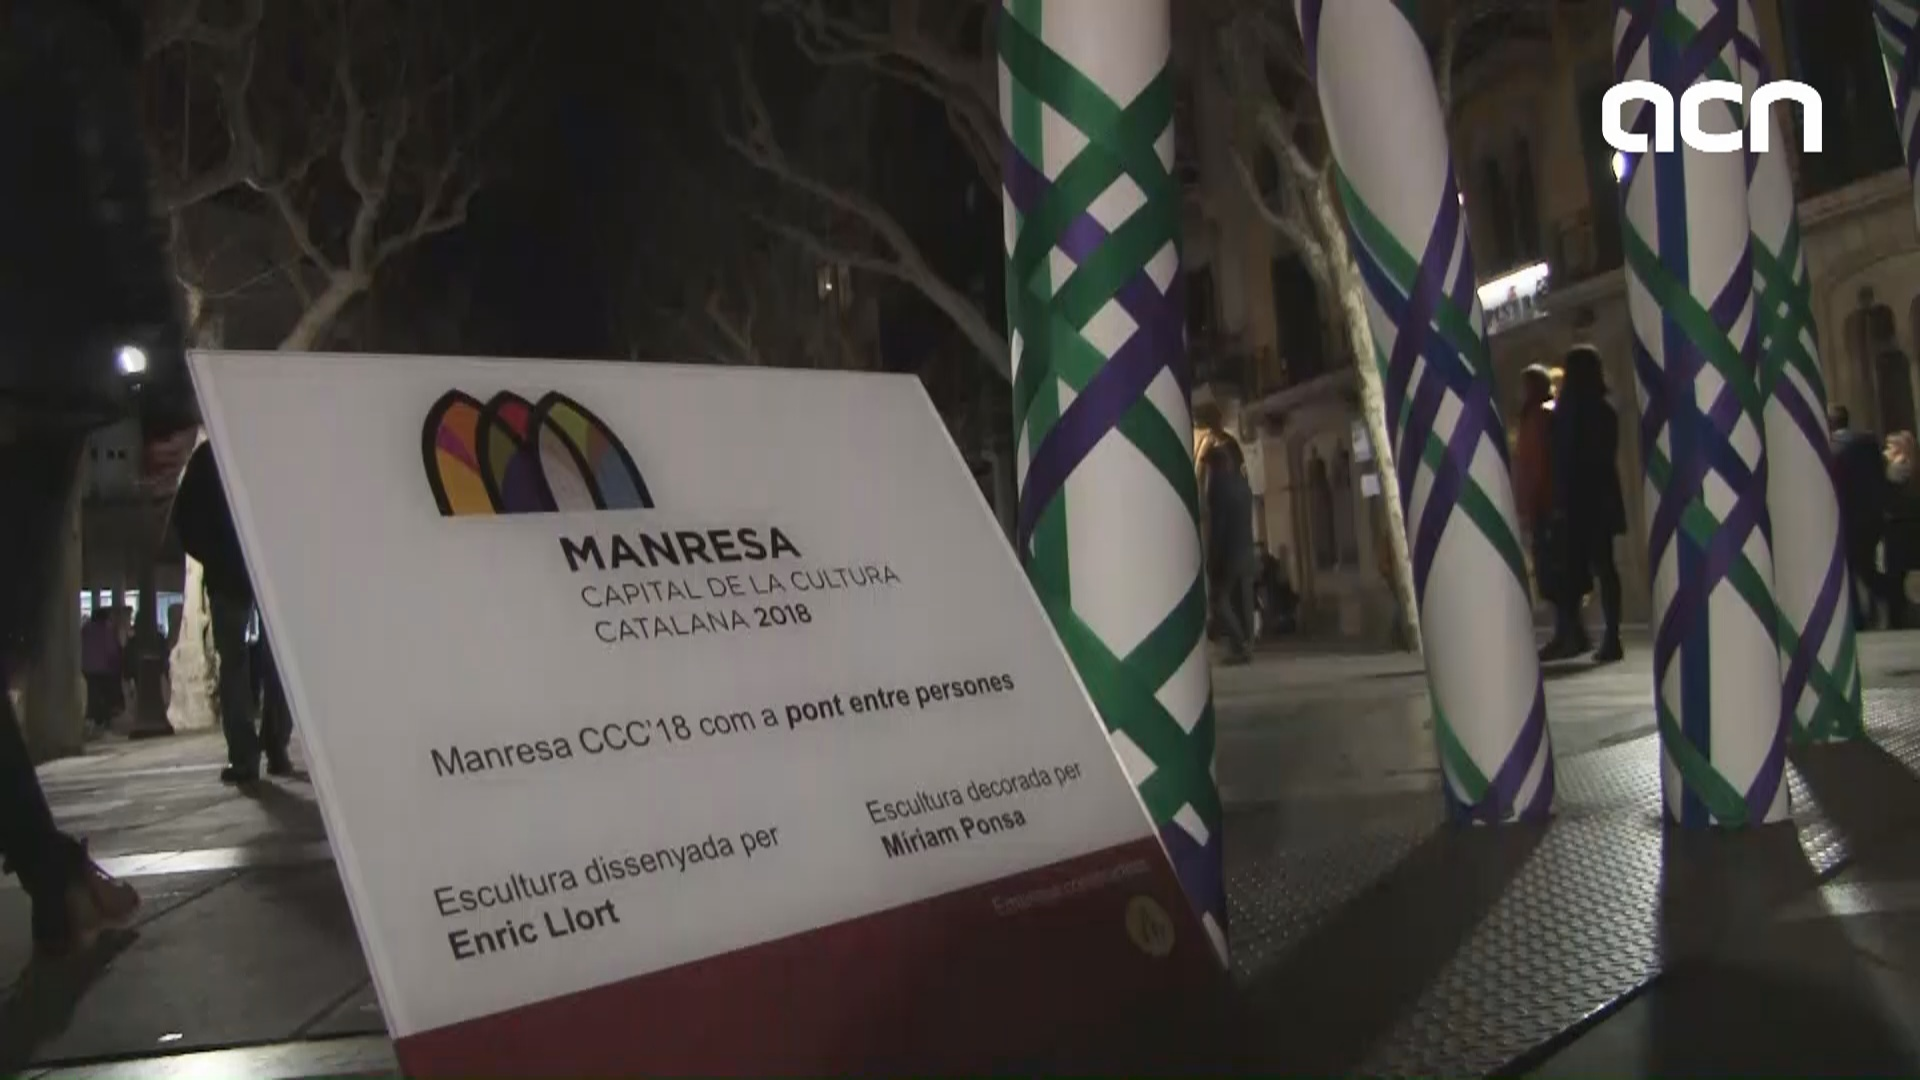 Manresa celebrates upcoming year as Capital of Catalan Culture